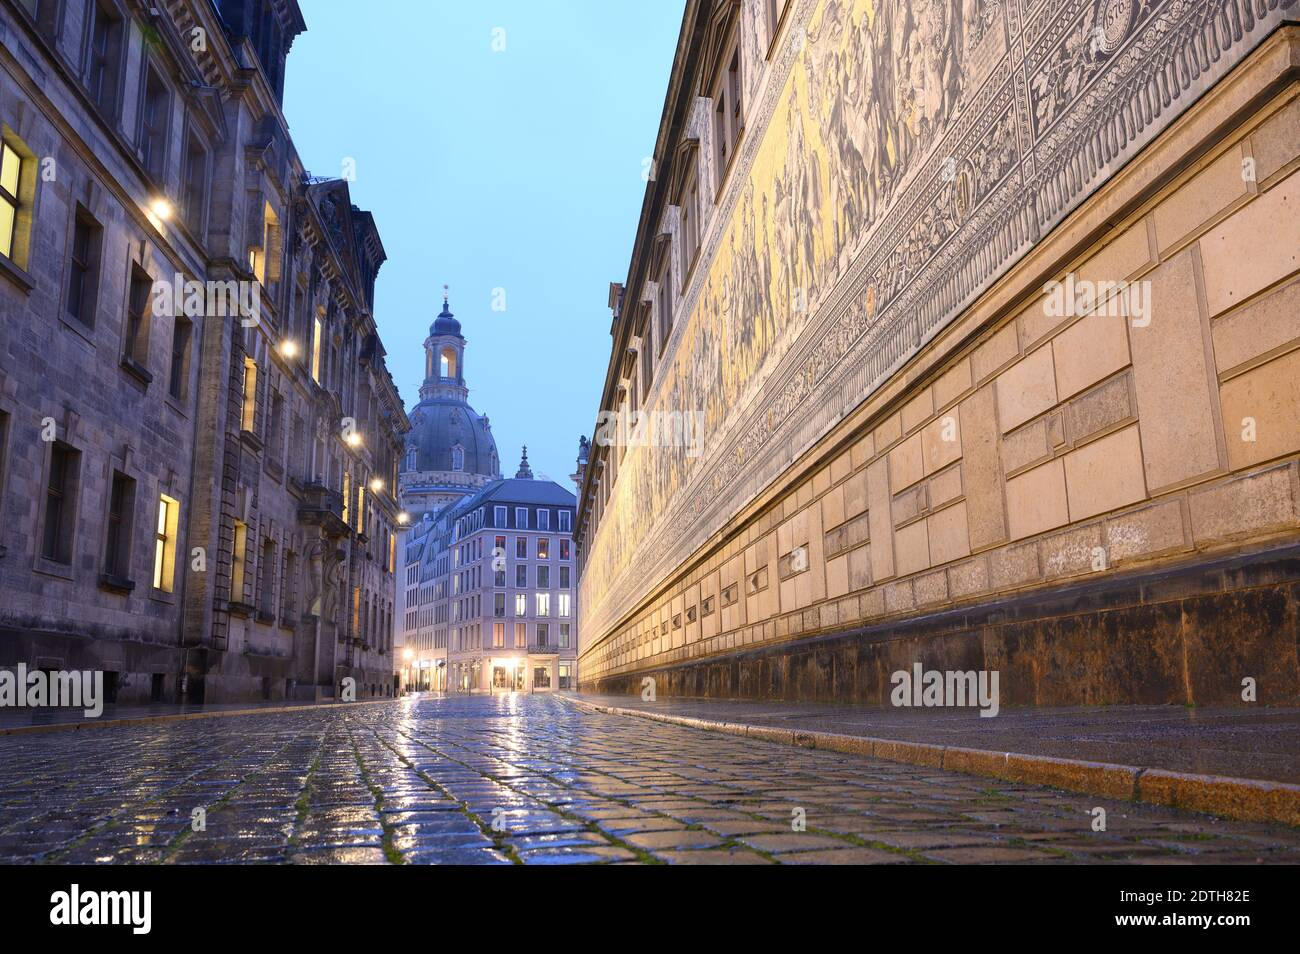 """Dresden, Germany. 22nd Dec, 2020. Augustusstrasse next to the mural """"Fürstenzug"""" (r) not far from the Frauenkirche (back) is deserted in the early morning. Germany is in a hard lockdown to contain the Corona pandemic. Credit: Sebastian Kahnert/dpa-Zentralbild/dpa/Alamy Live News Stock Photo"""